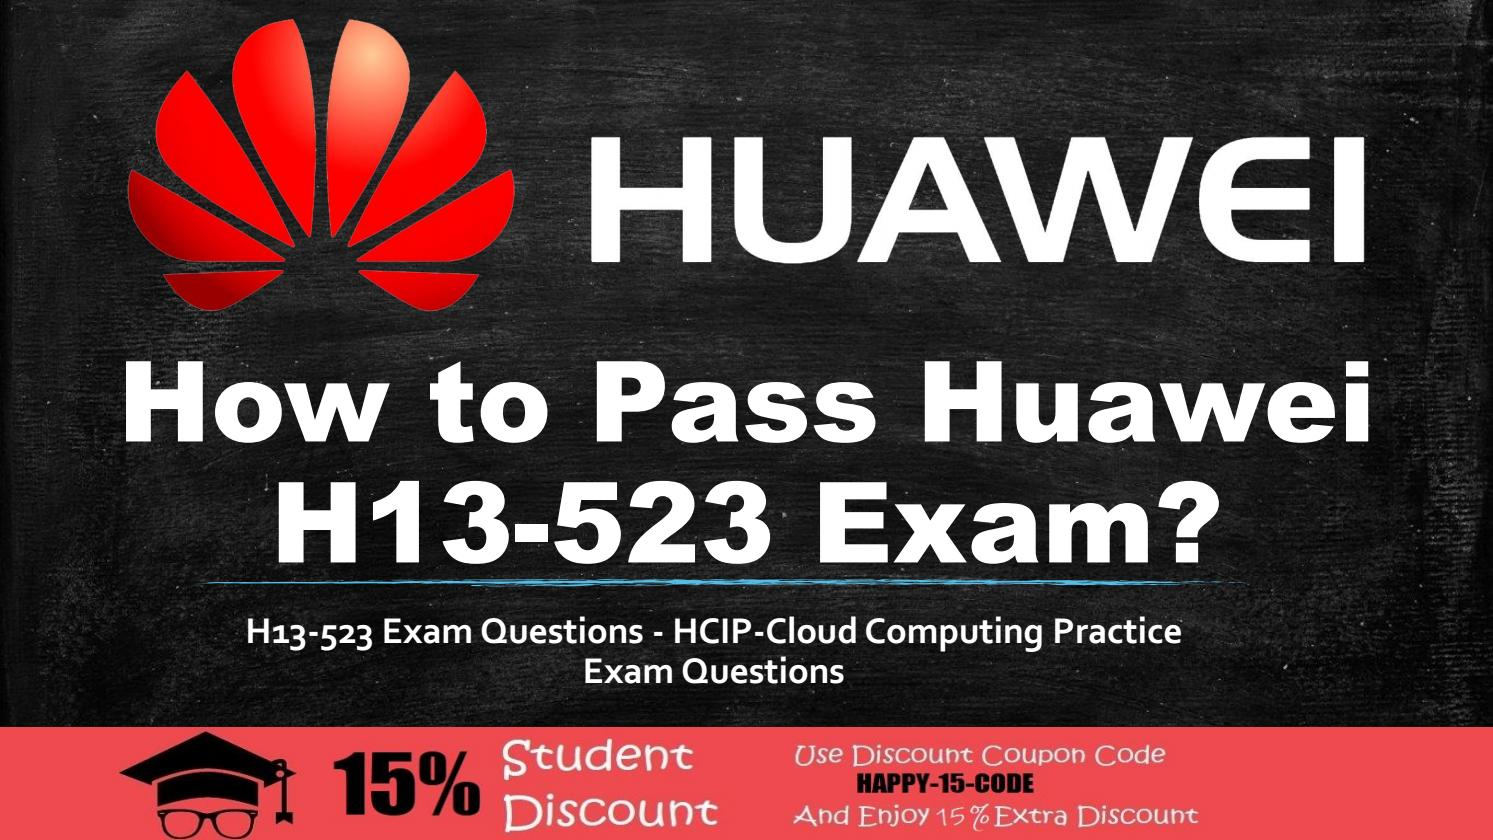 Huawei HCIP-Cloud Computing H13-523 Questions and Answers